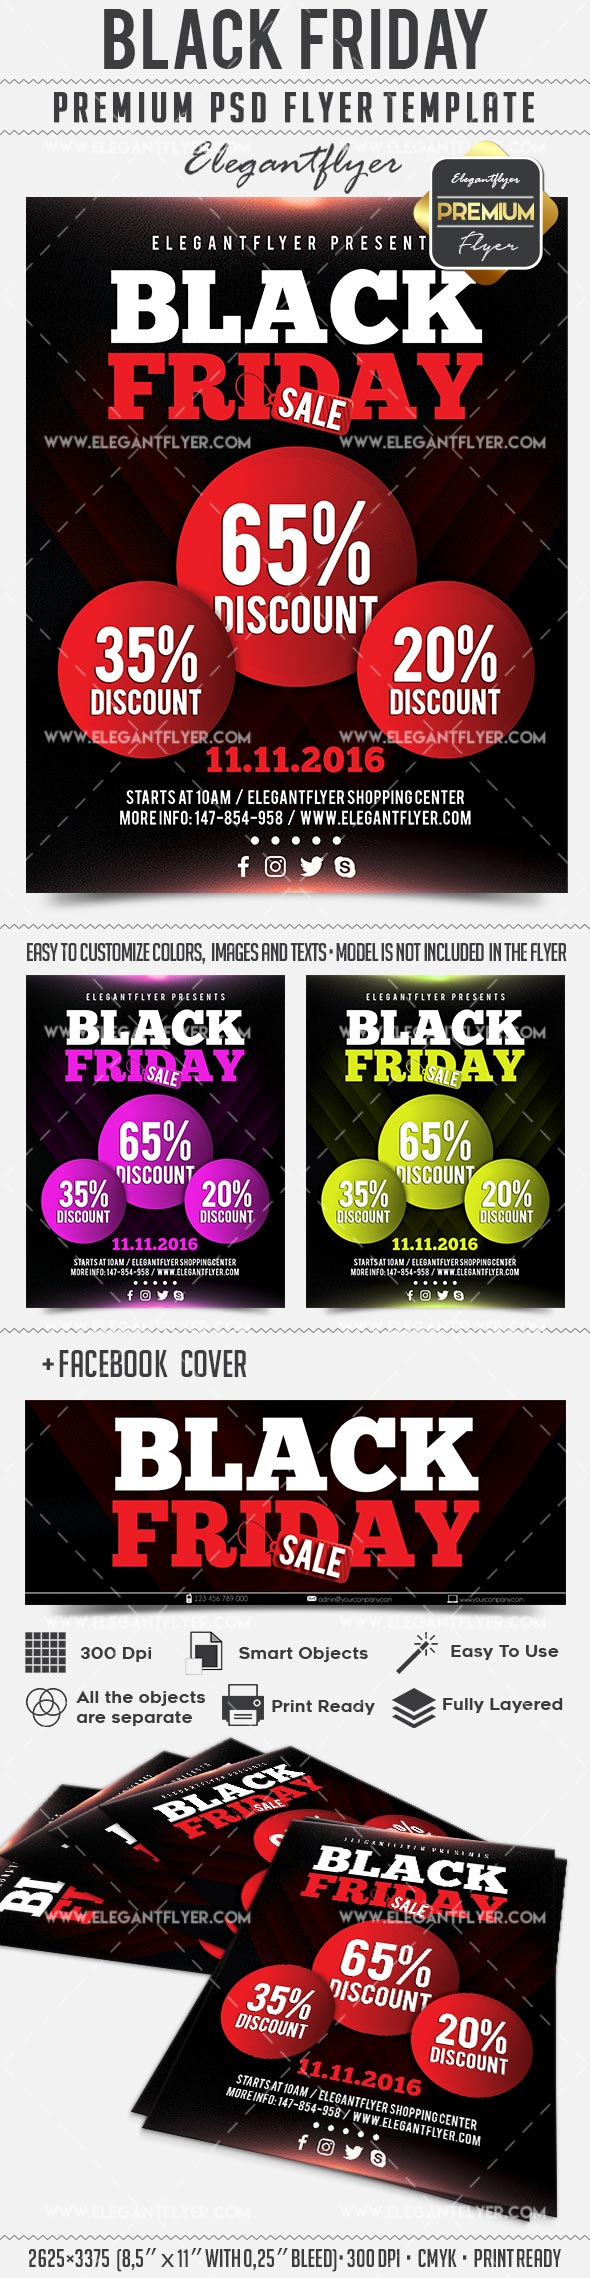 black friday flyer psd template facebook cover by elegantflyer black friday flyer psd template facebook cover